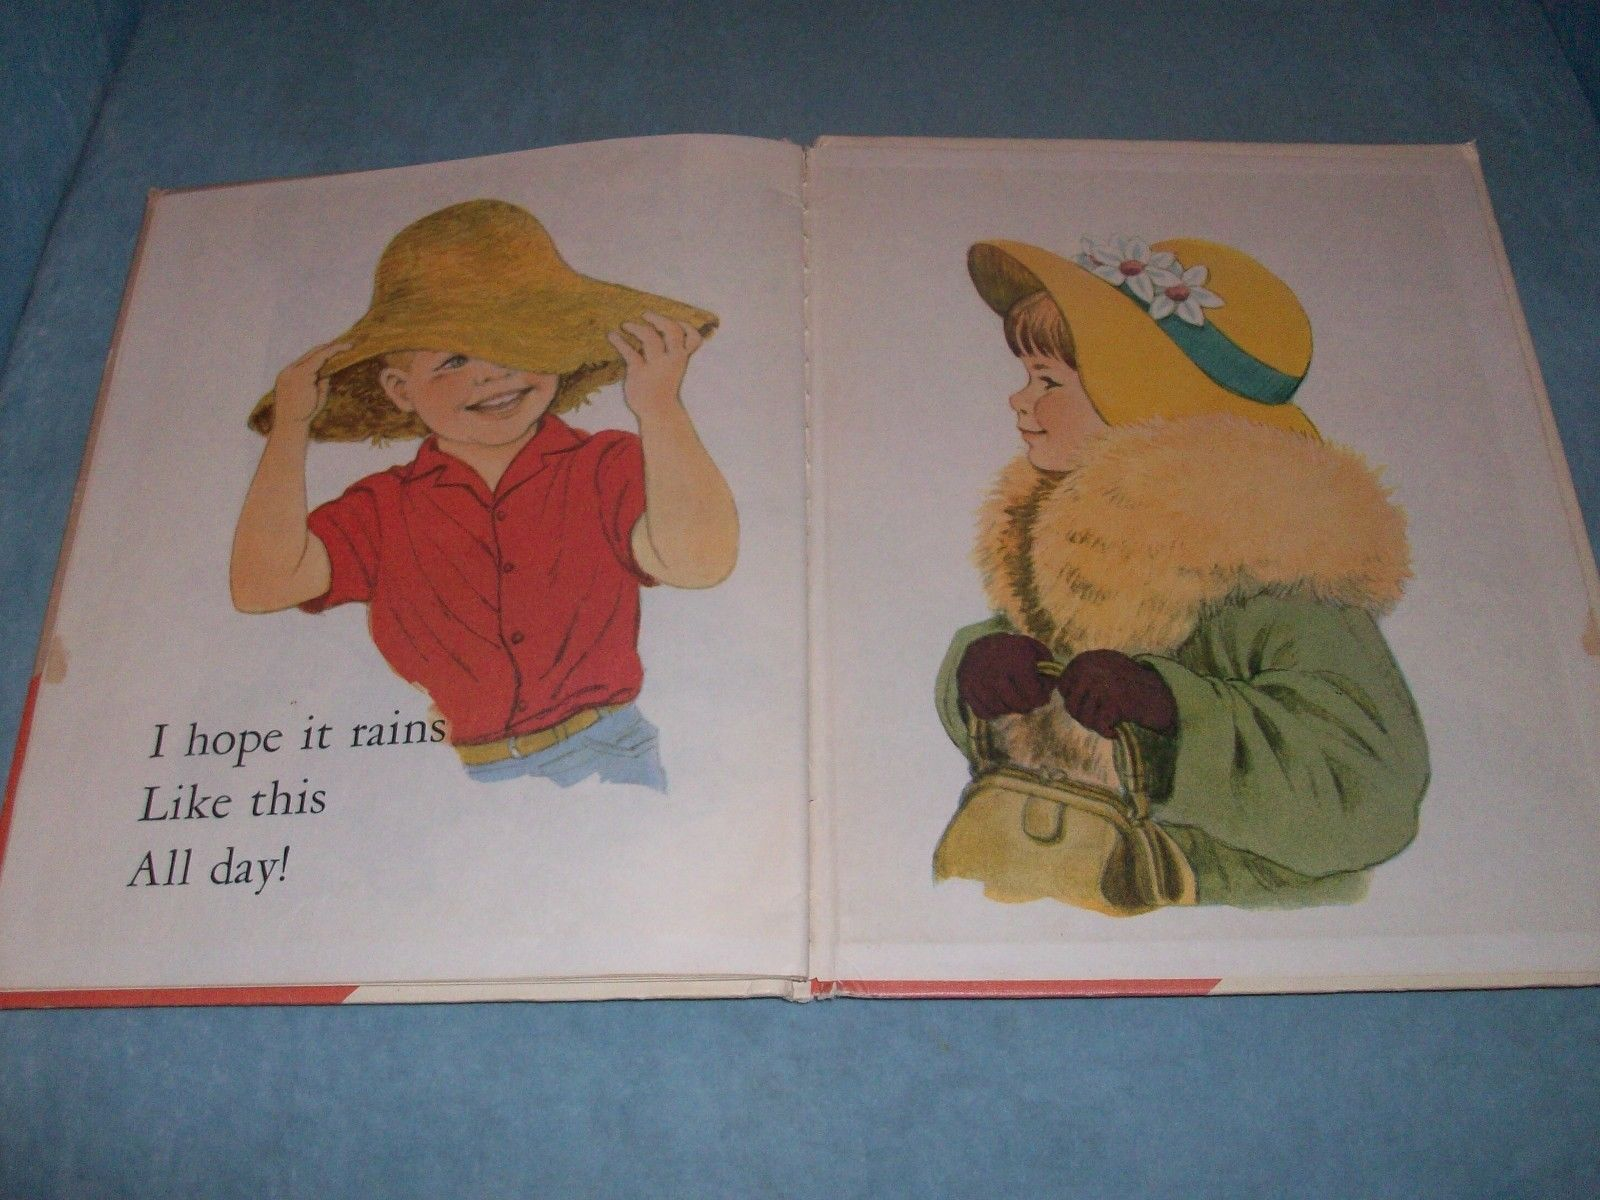 1967 The Treasure Trunk  A Start-Right Elf Book  BIG EDITION  #7904  Very Good!